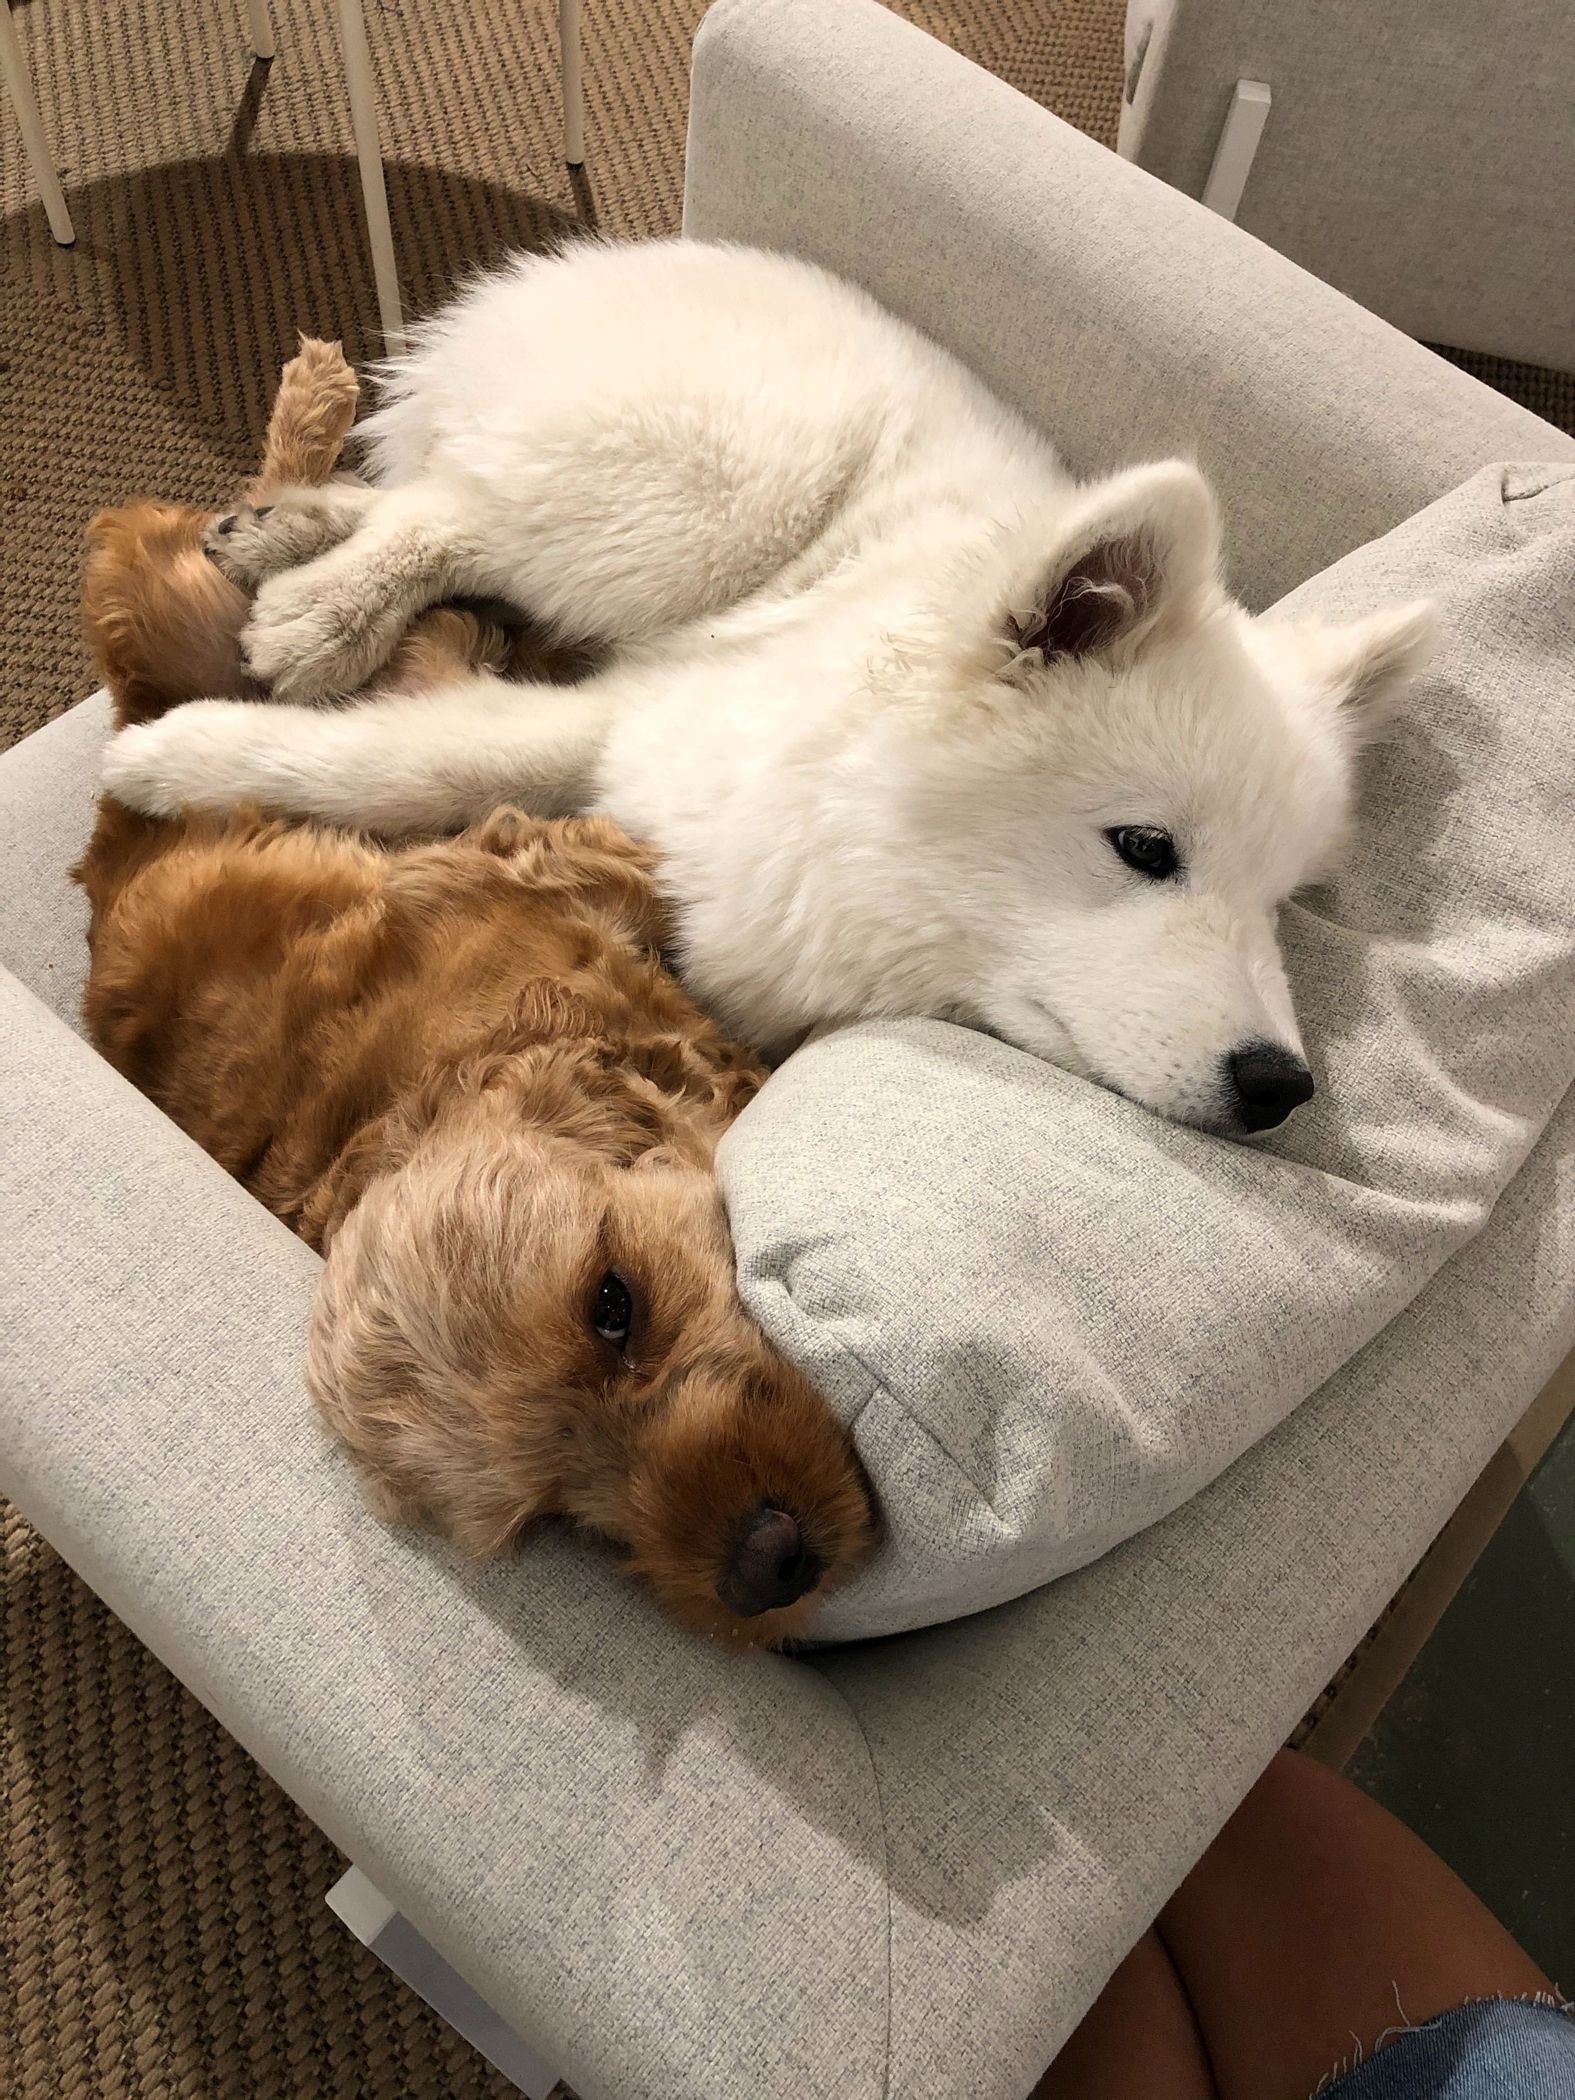 Noah and Alaska, the Vev office dogs